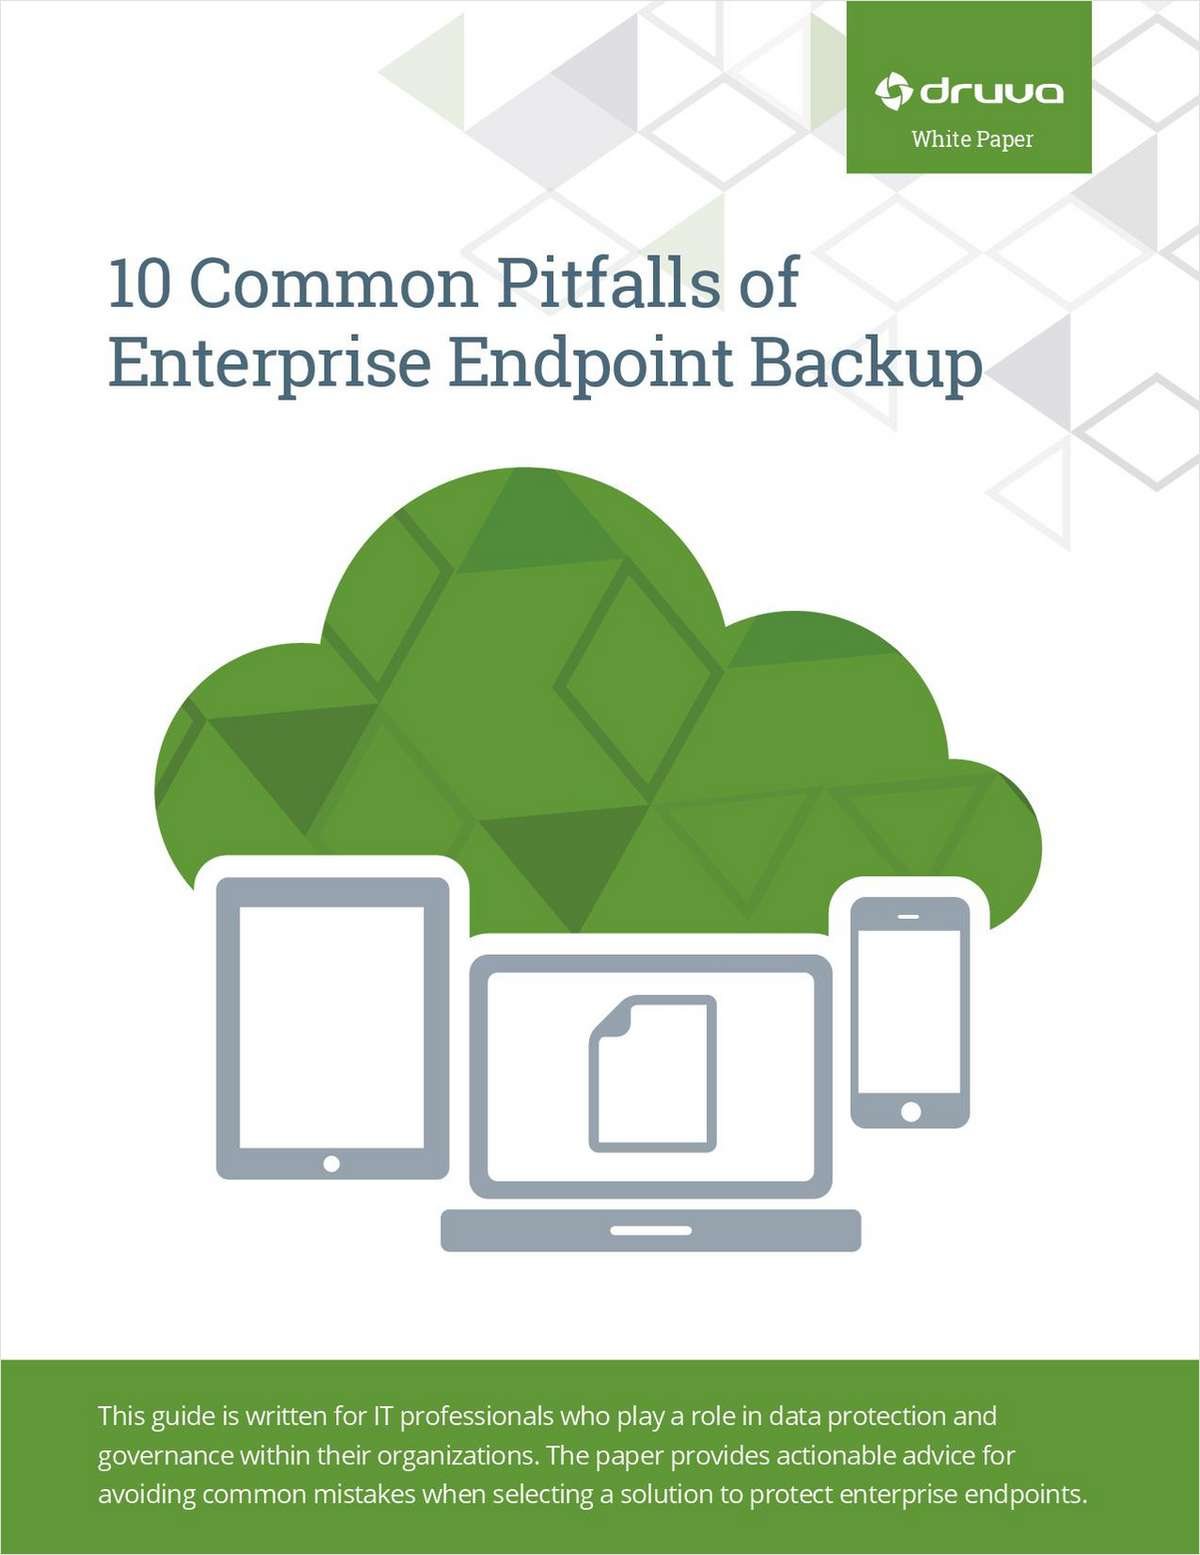 10 Common Pitfalls of Successful Enterprise Endpoint Backup